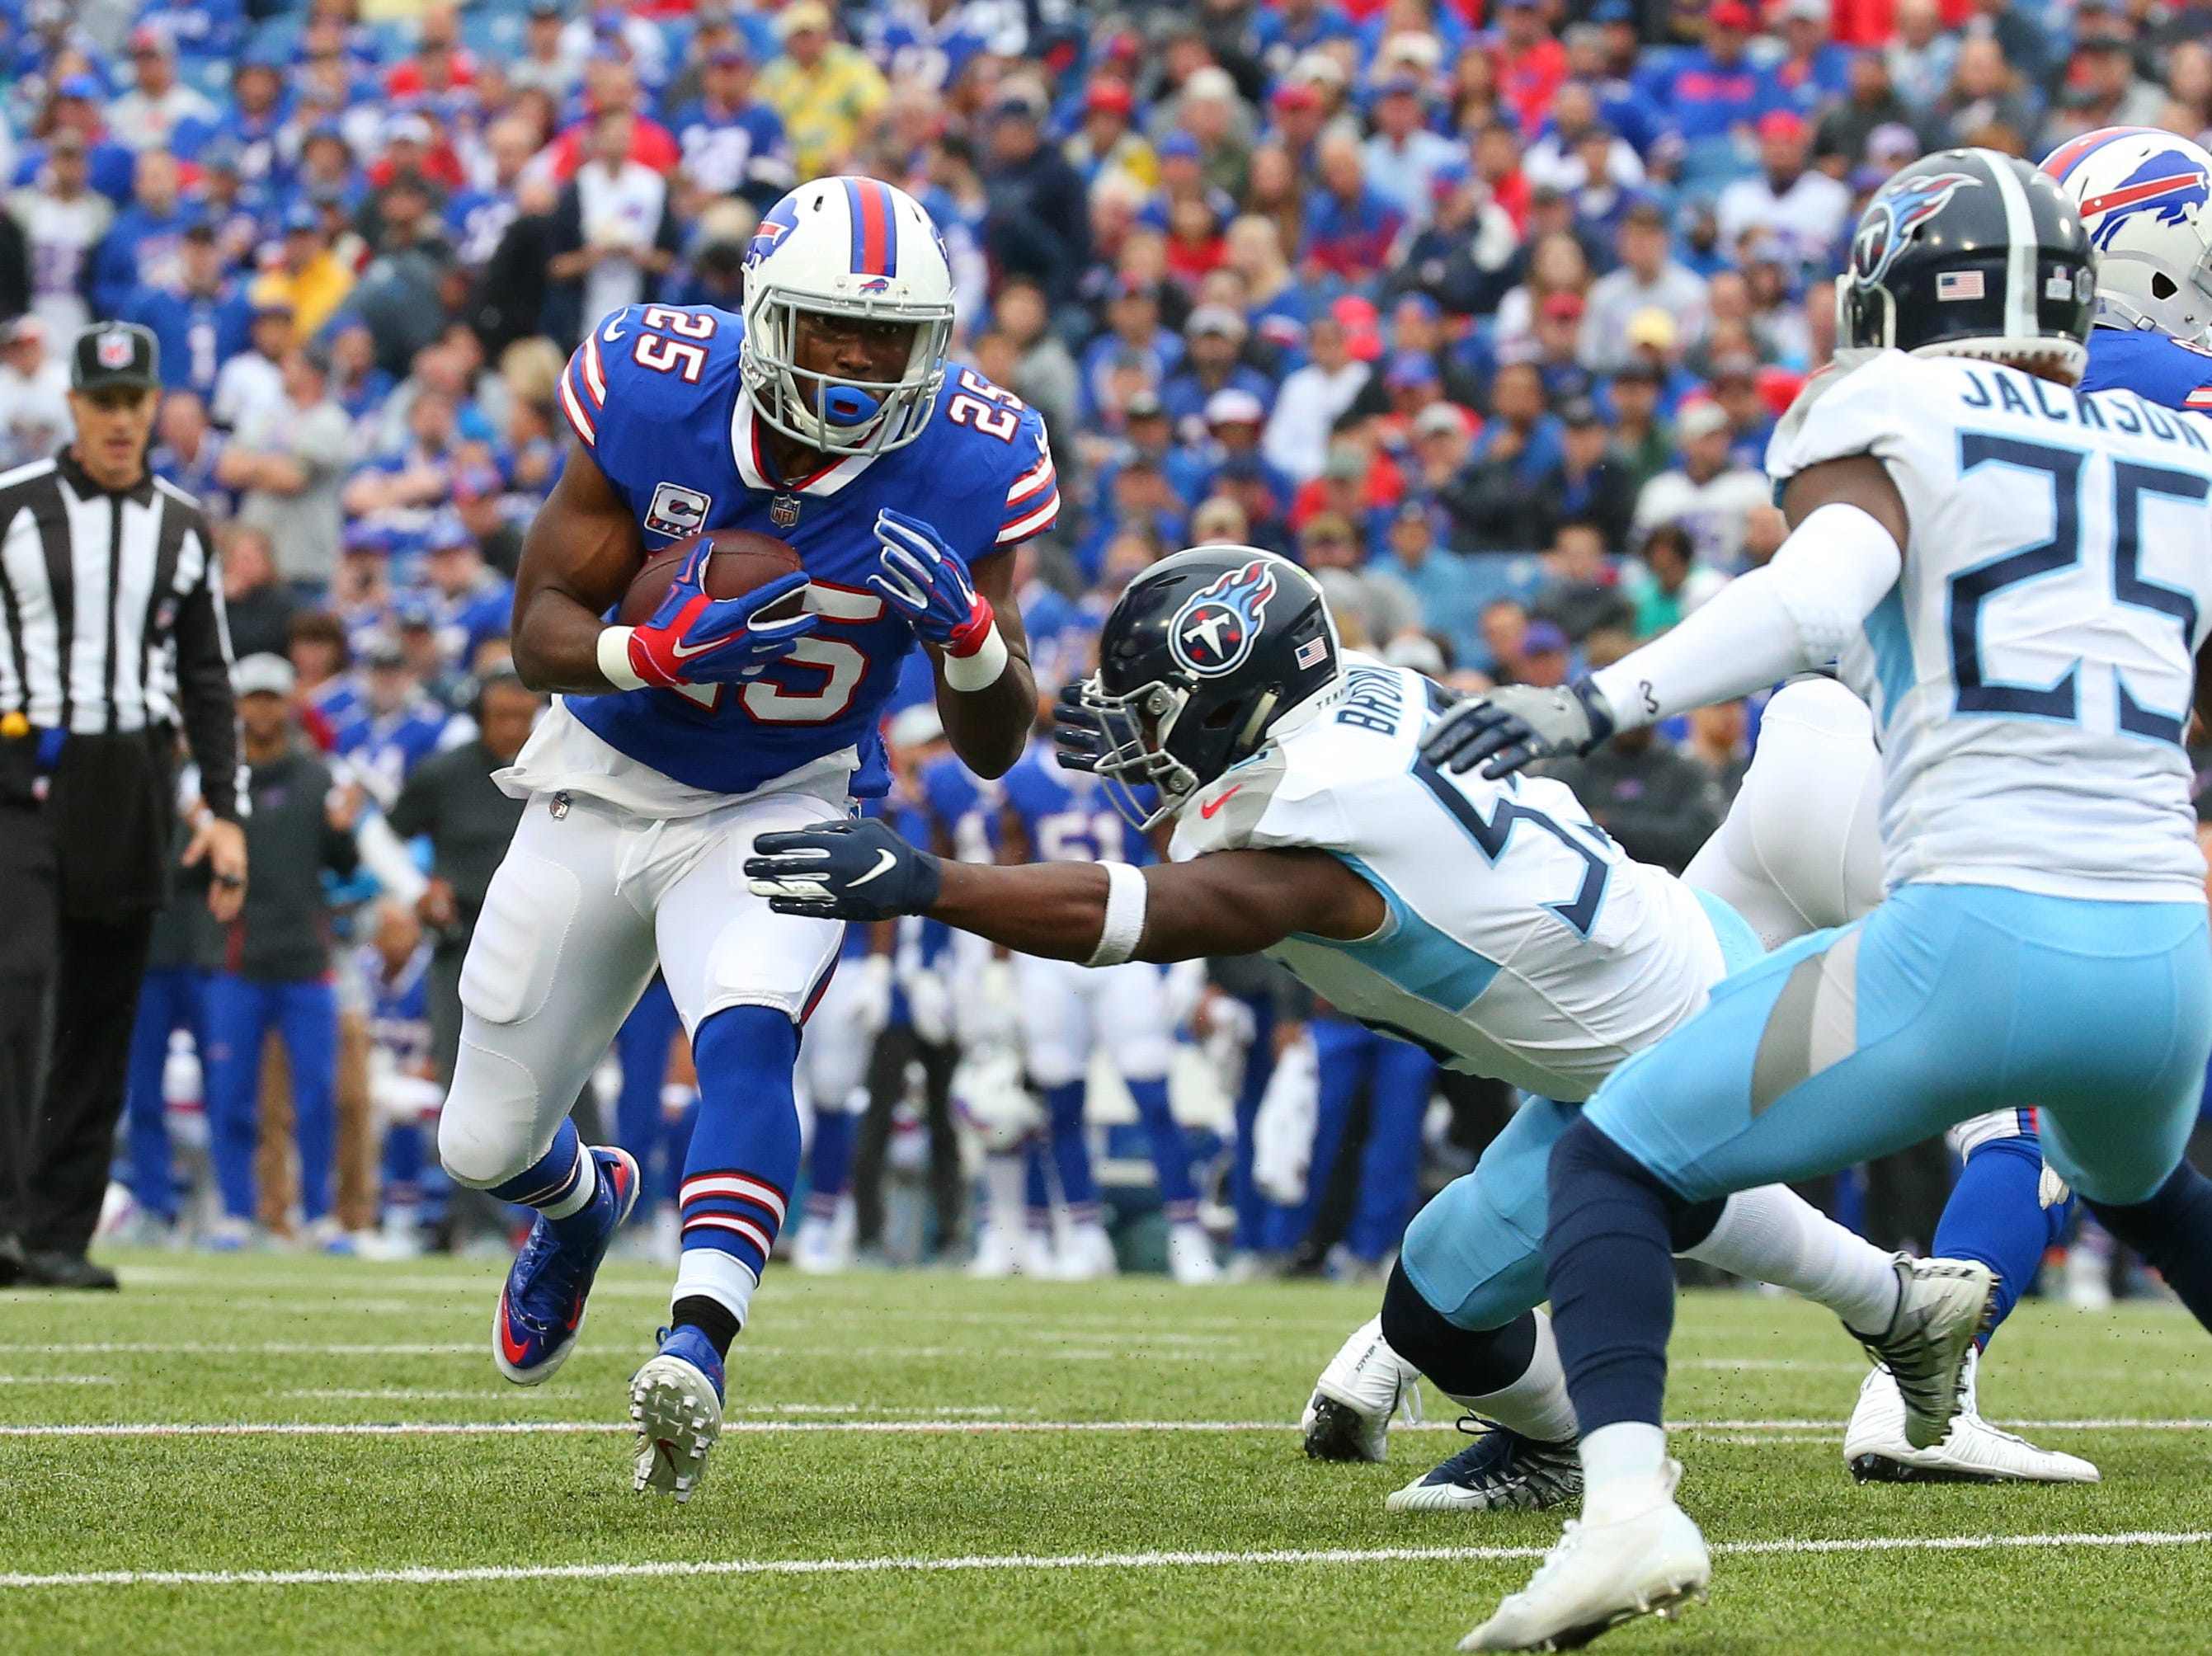 Oct 7, 2018; Orchard Park, NY, USA; Buffalo Bills running back LeSean McCoy (25) runs with the ball against Tennessee Titans linebacker Jayon Brown (55) during the first quarter at New Era Field.